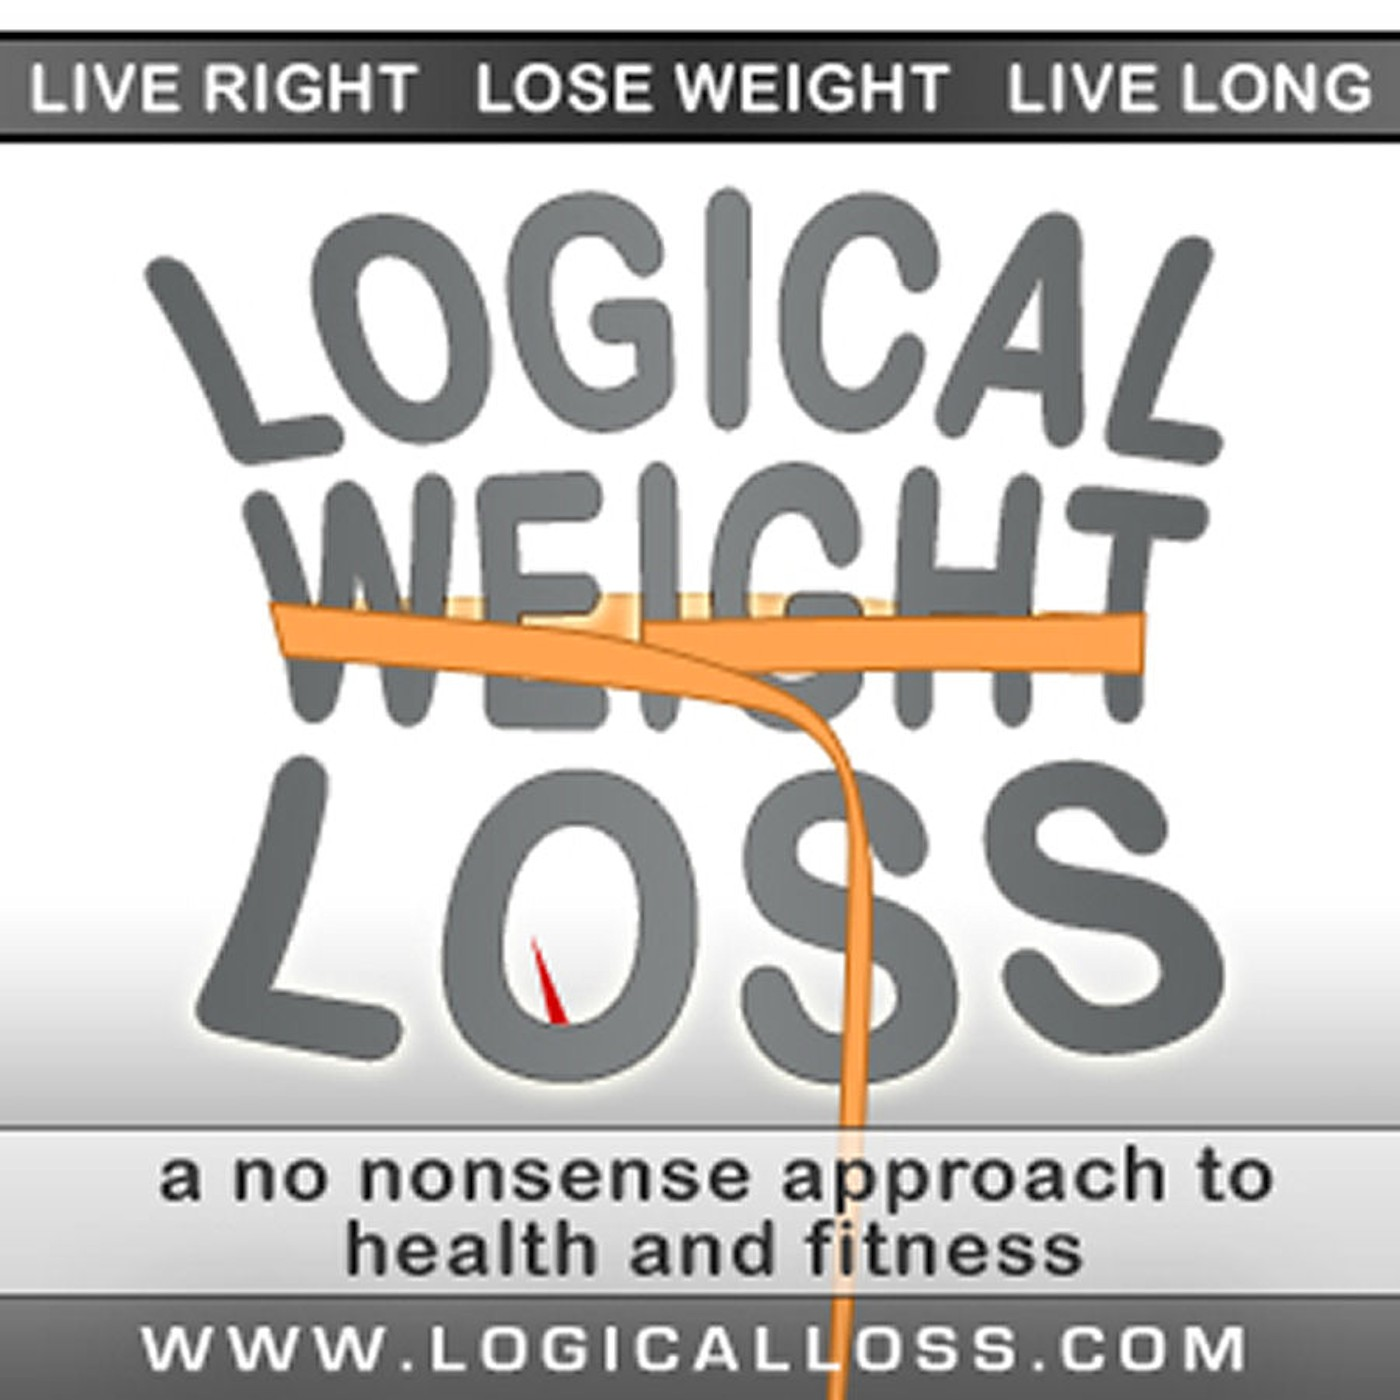 Artwork for Bodybugg Lets You Lose Weight Your Way